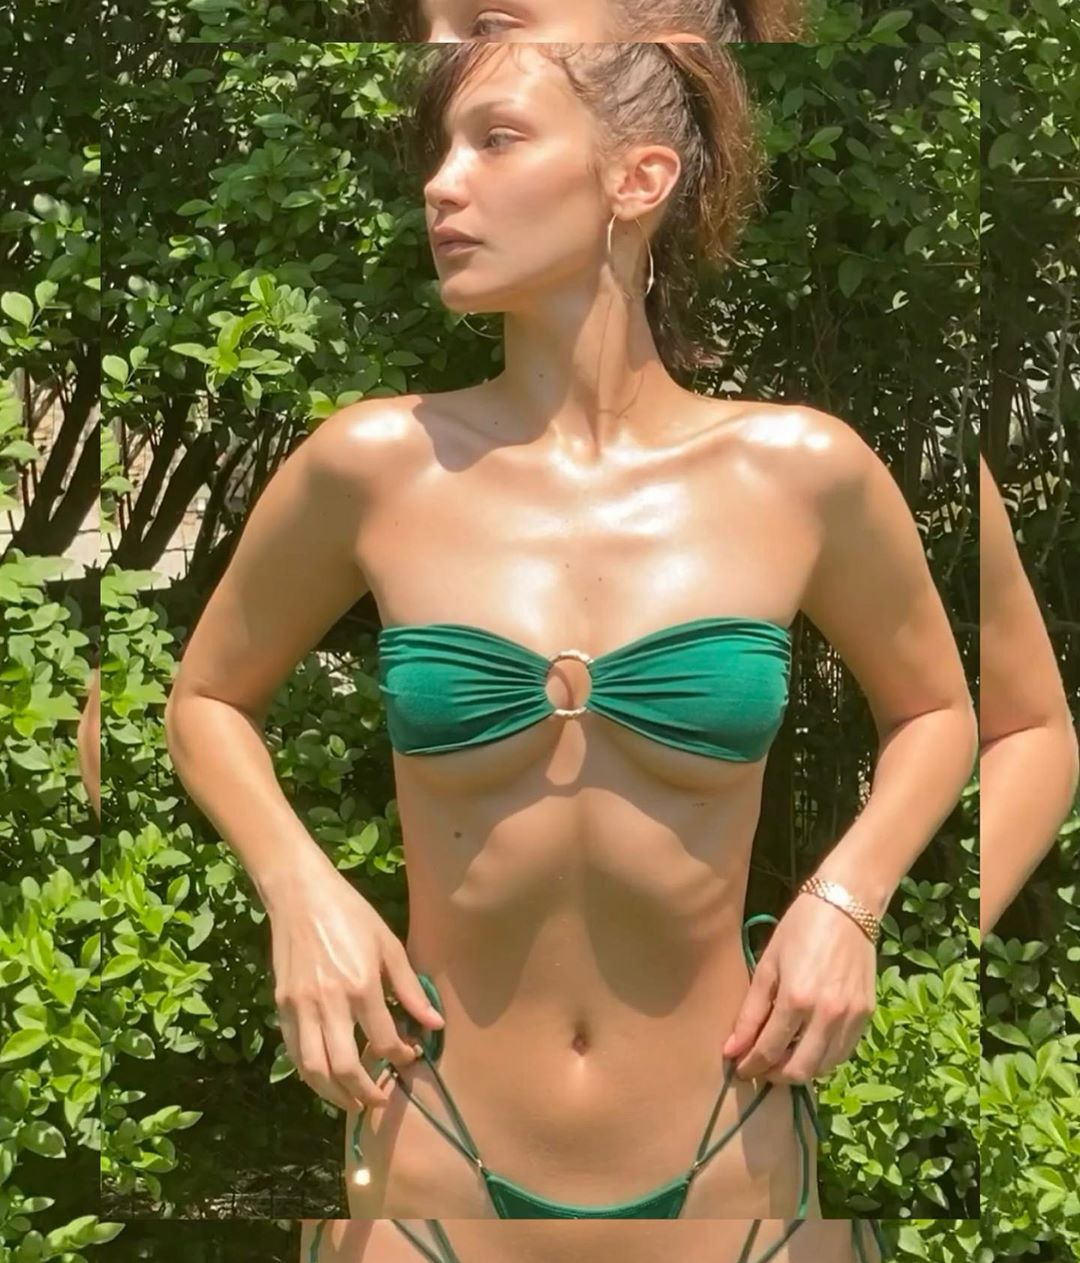 Bella Hadid donning Dark green skimpy string bikini bottom